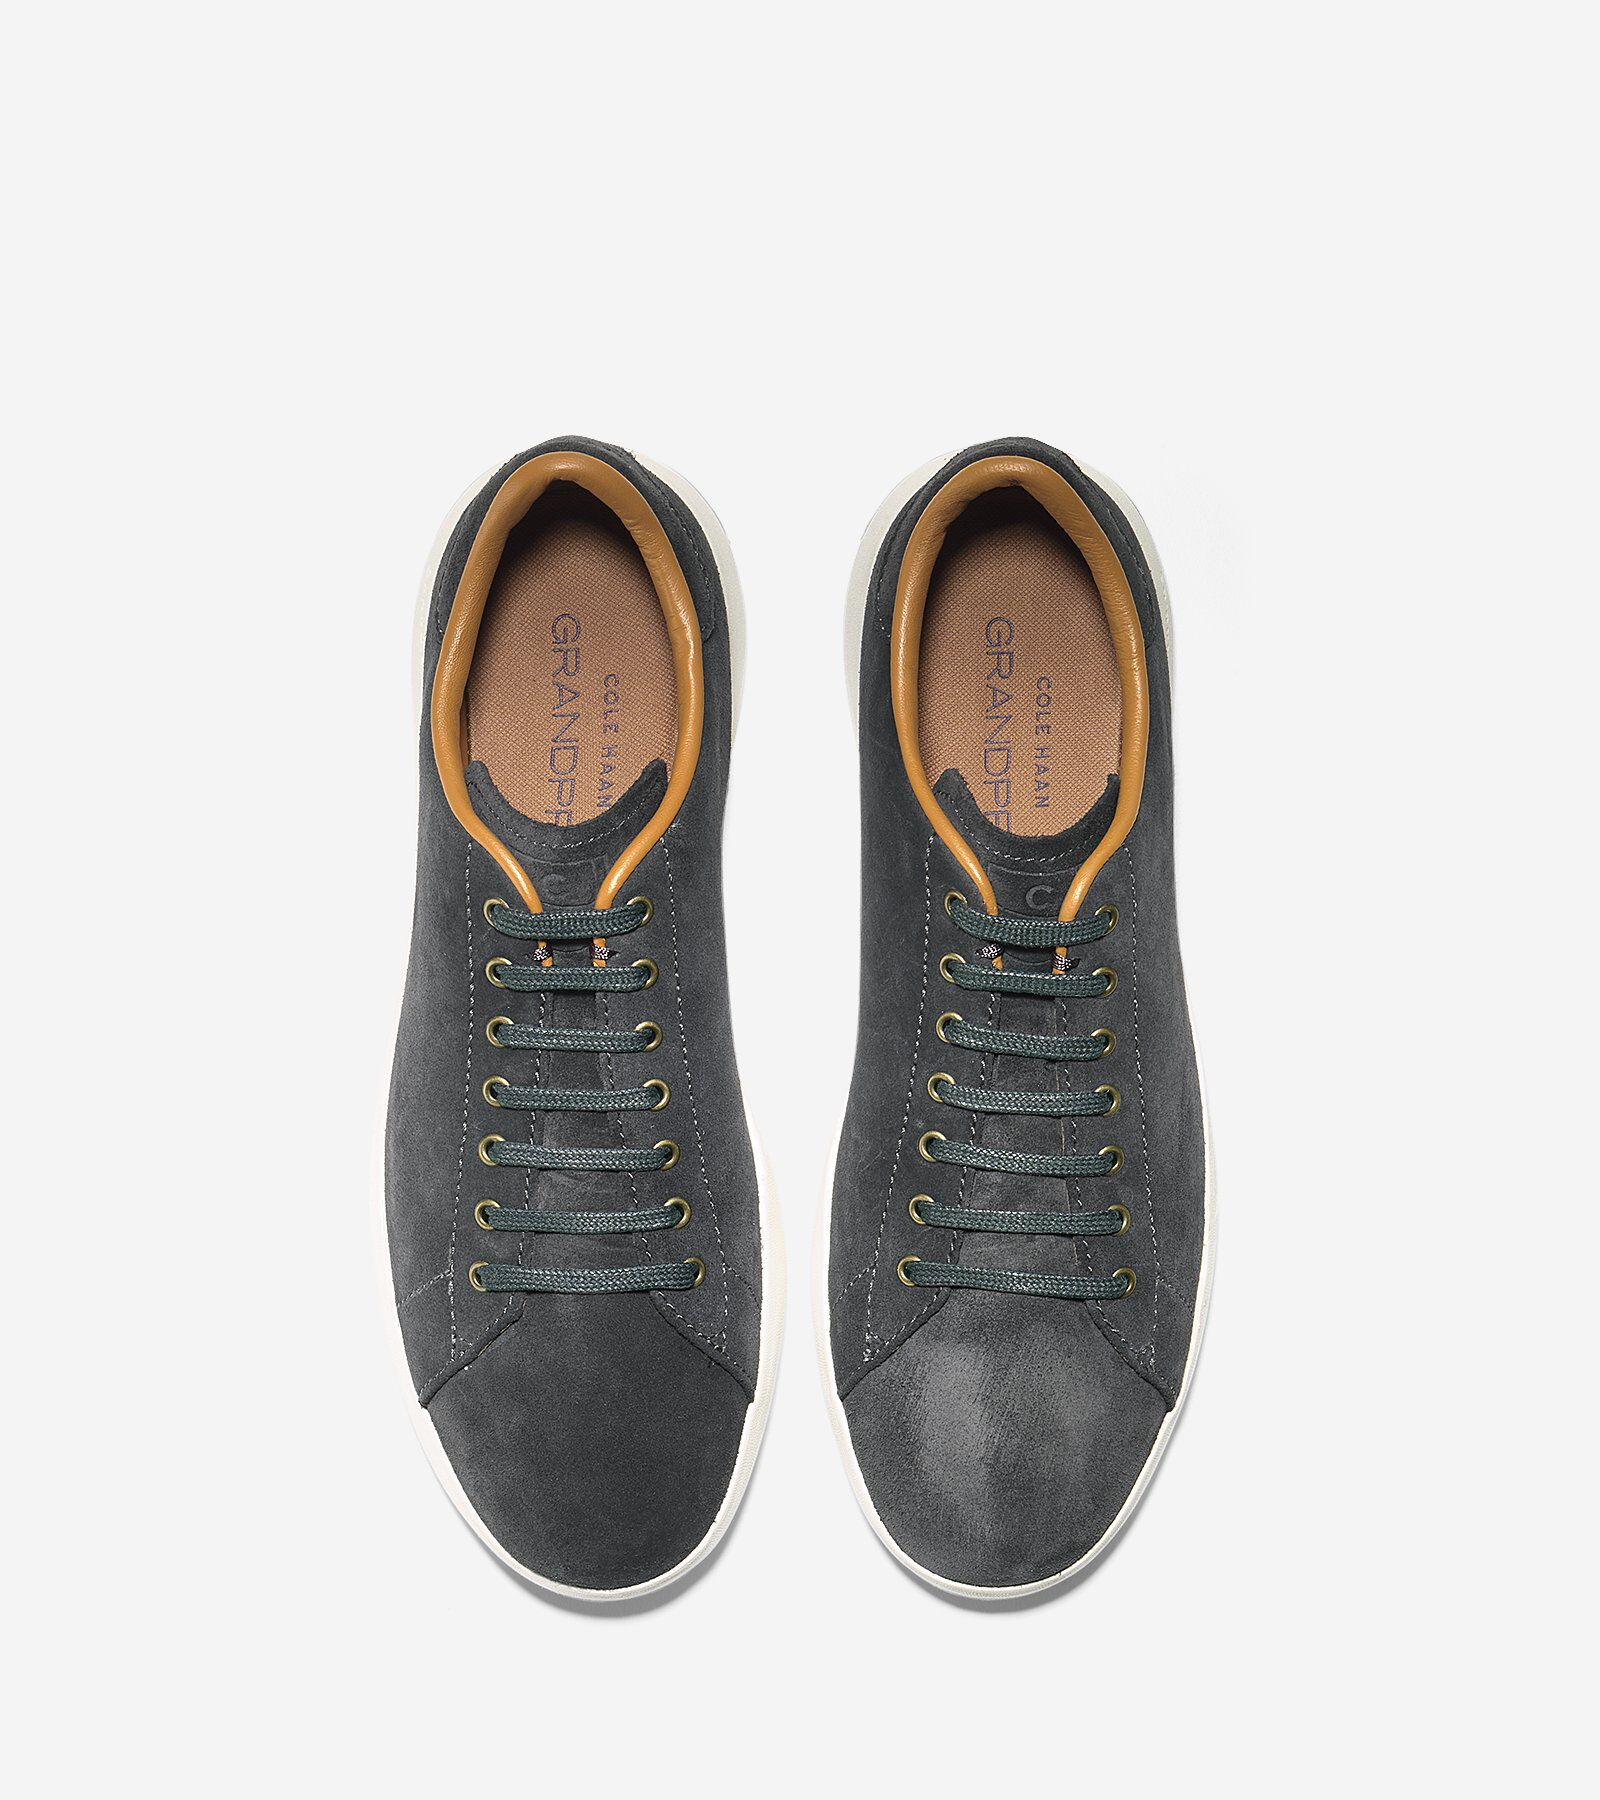 cole haan shoes brown for jeans males and females affected 69997